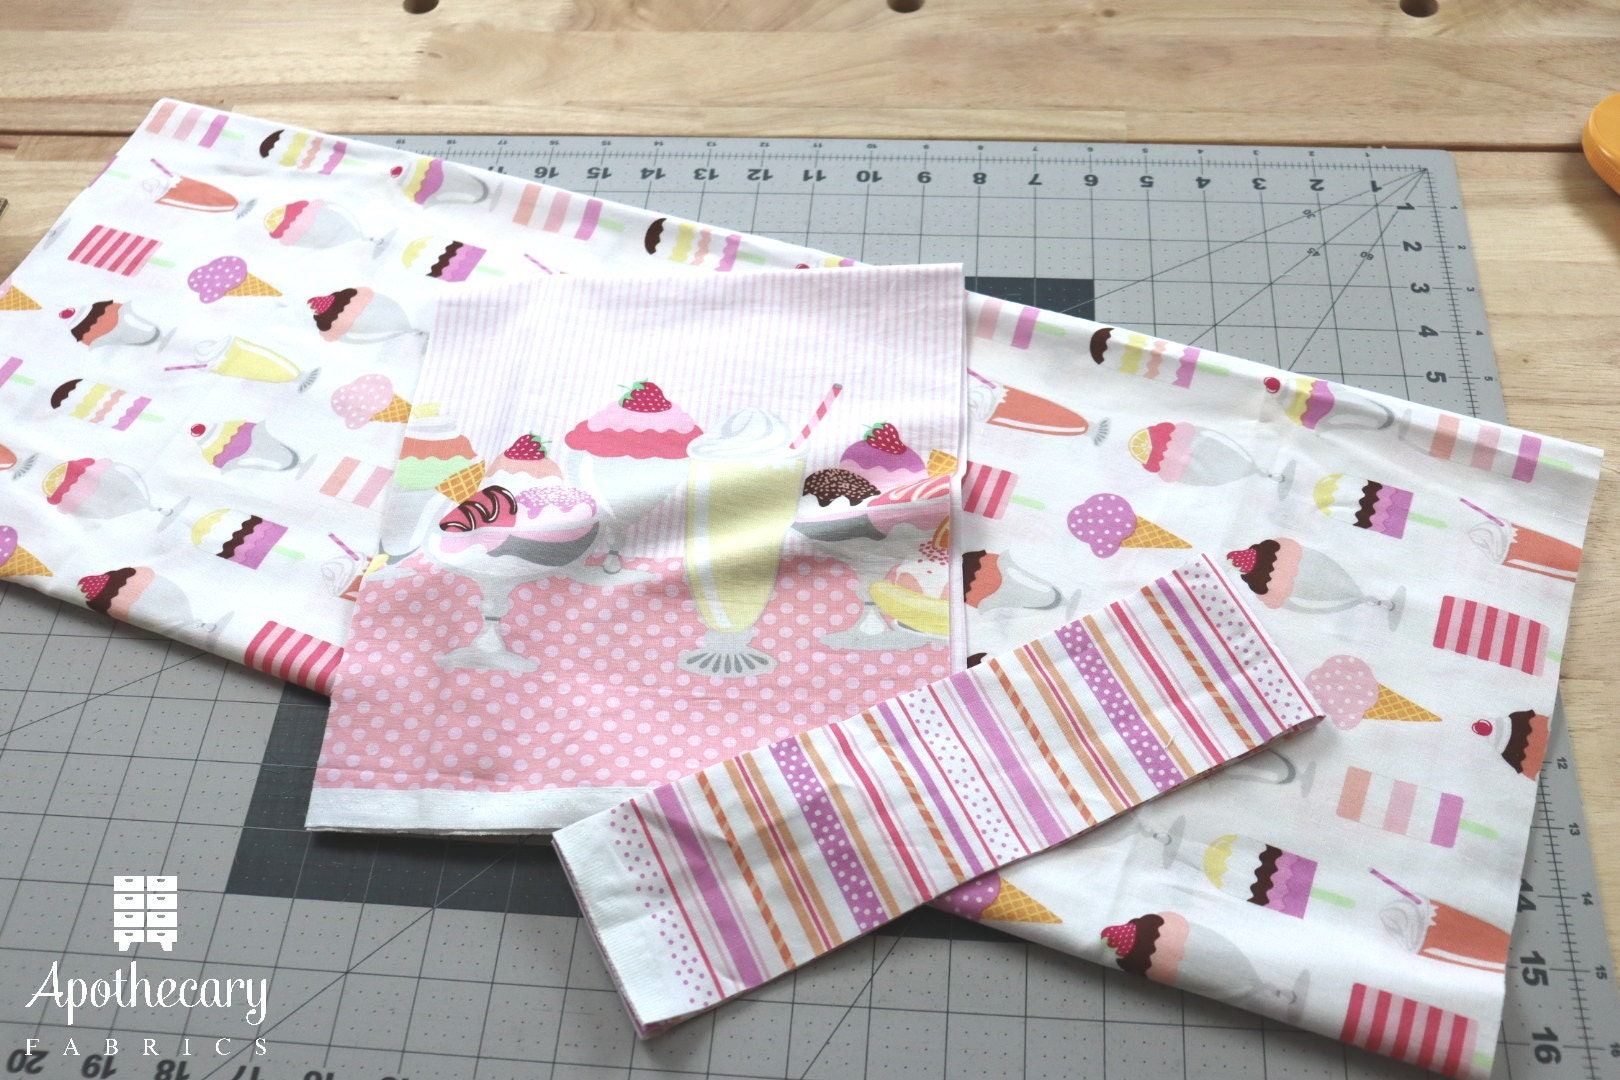 Three pieces of fabric cut to size for the Perfect Pillowcase tutorial.